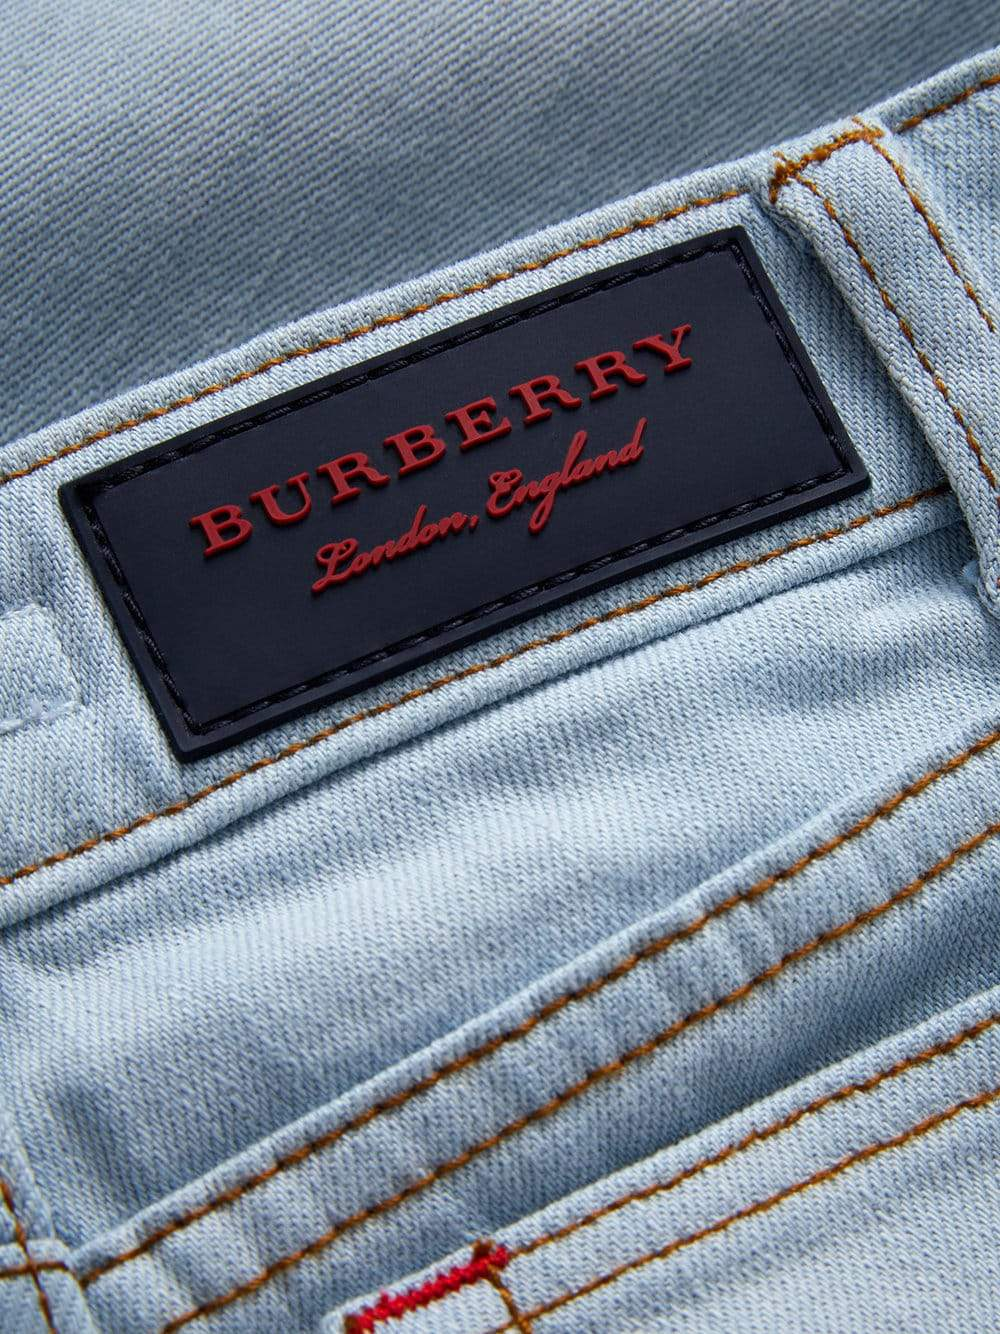 Burberry KB4 Relaxed Jean For Boys/Kids, Light Blue